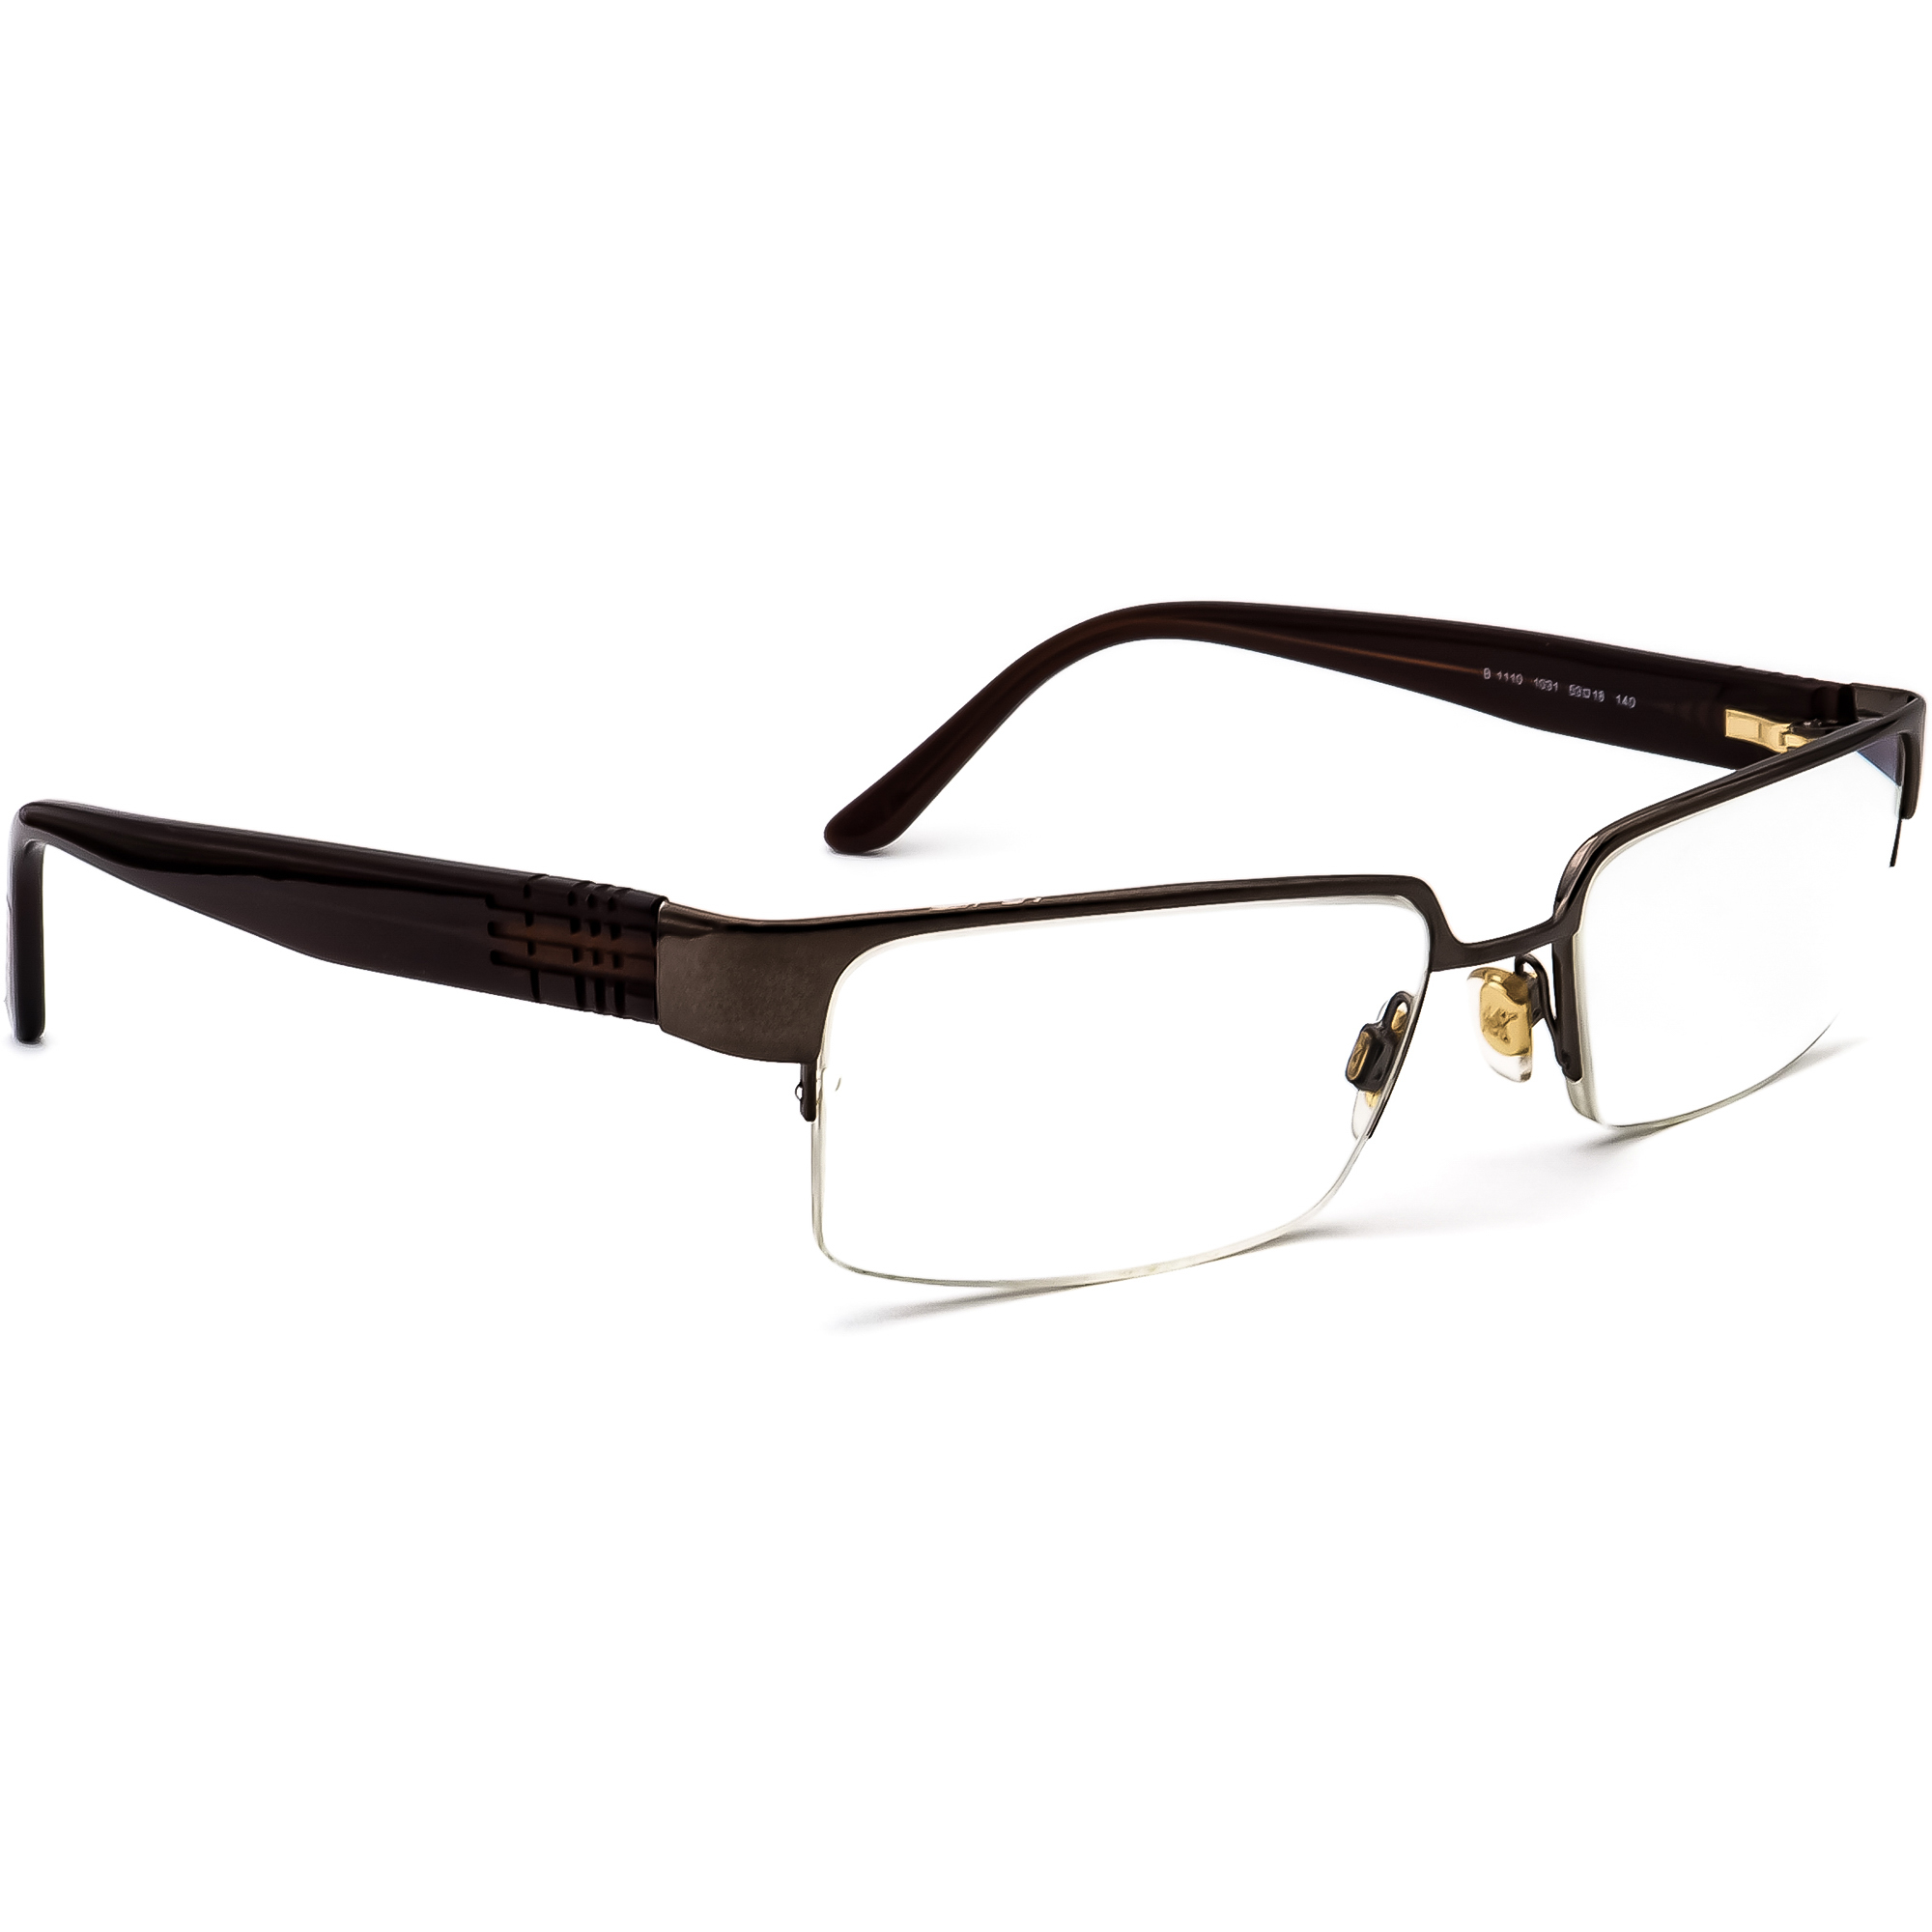 Burberry B 1110 1031 Eyeglasses